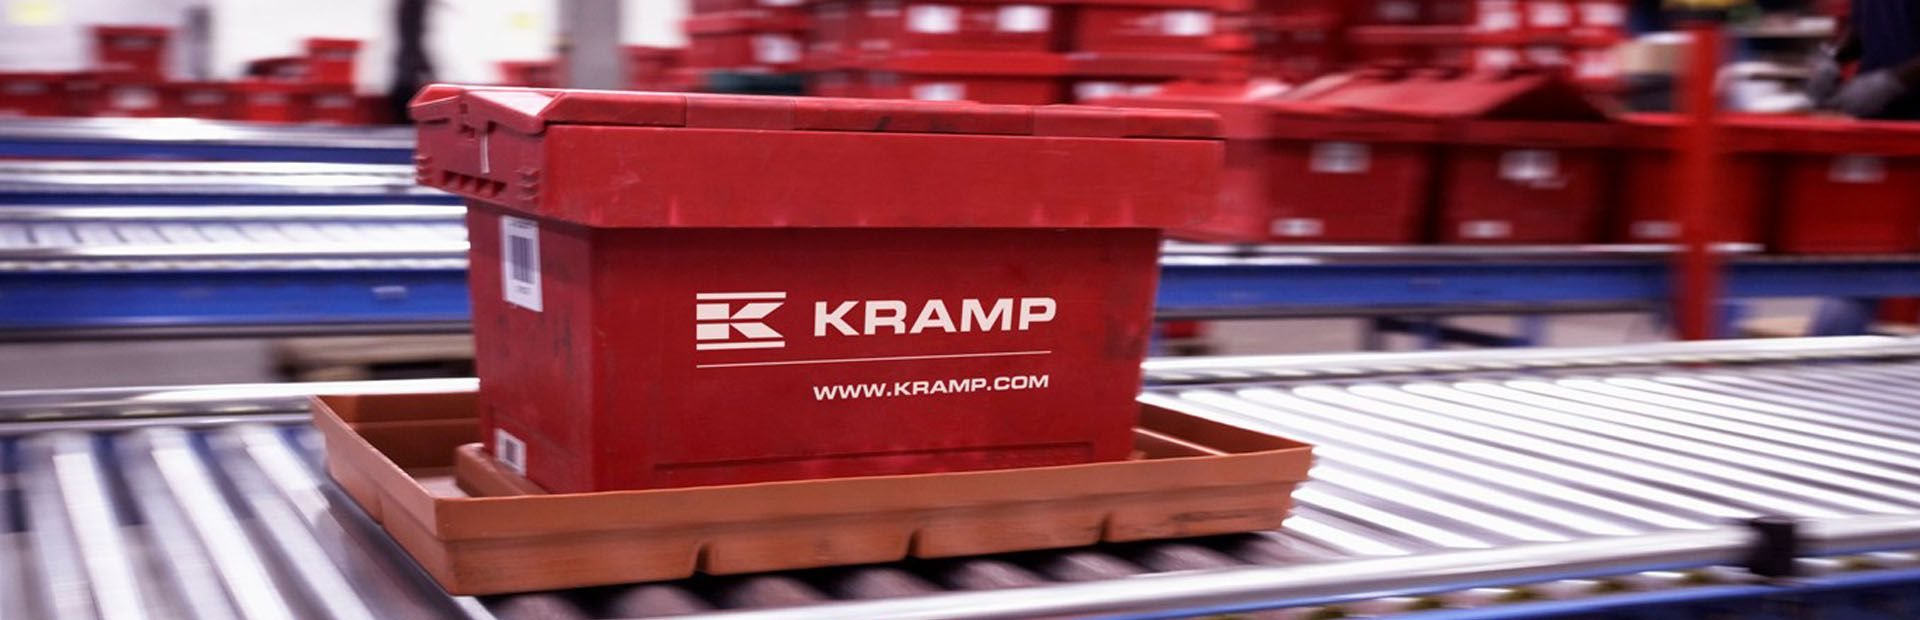 kramp-slider